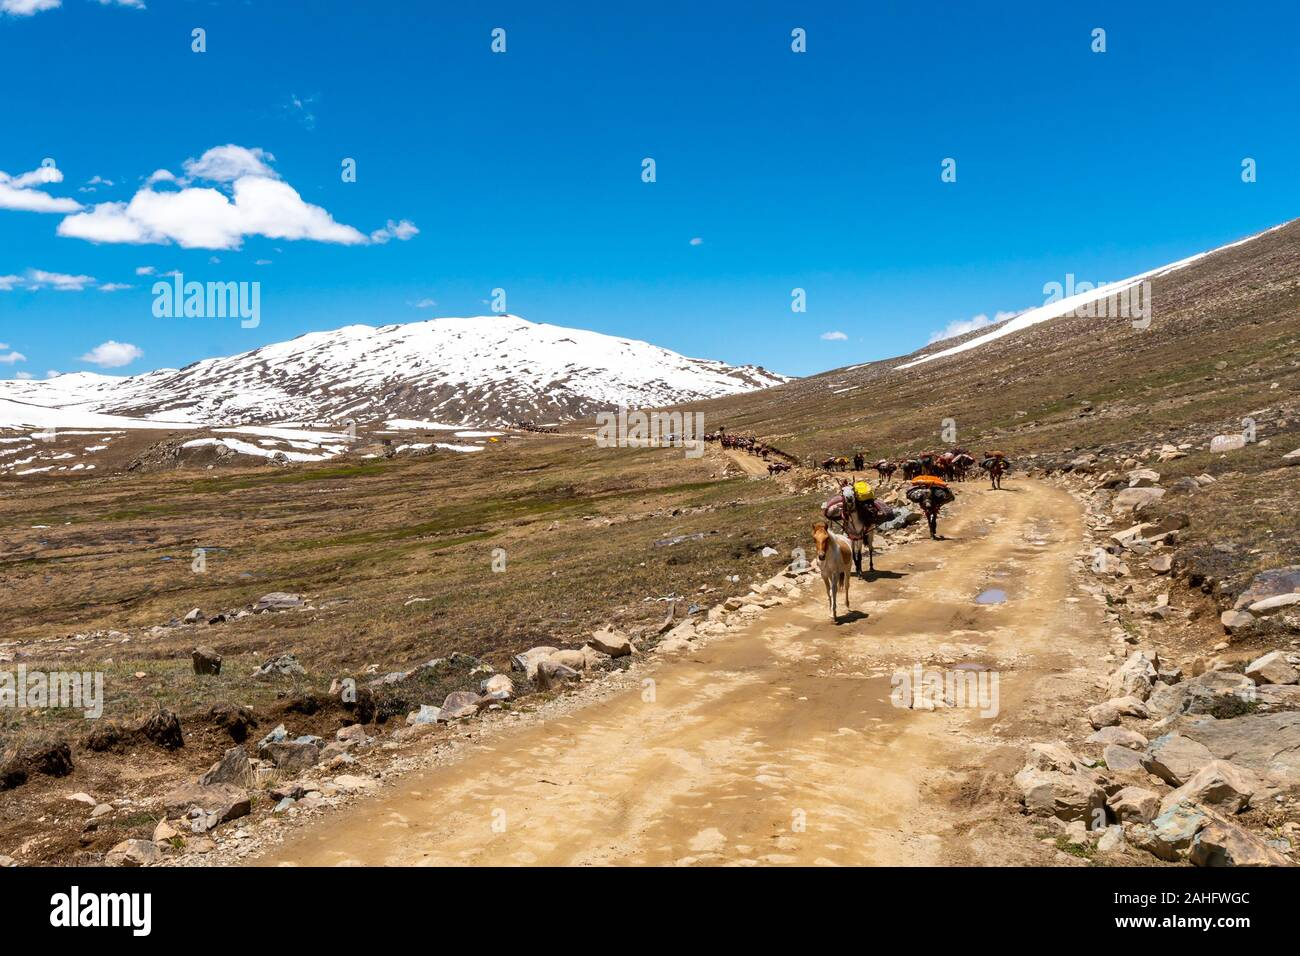 Deosai National Park Picturesque View of Nomads Walking with their Loaded Horses and Donkey to another Place on a Sunny Blue Sky Day Stock Photo